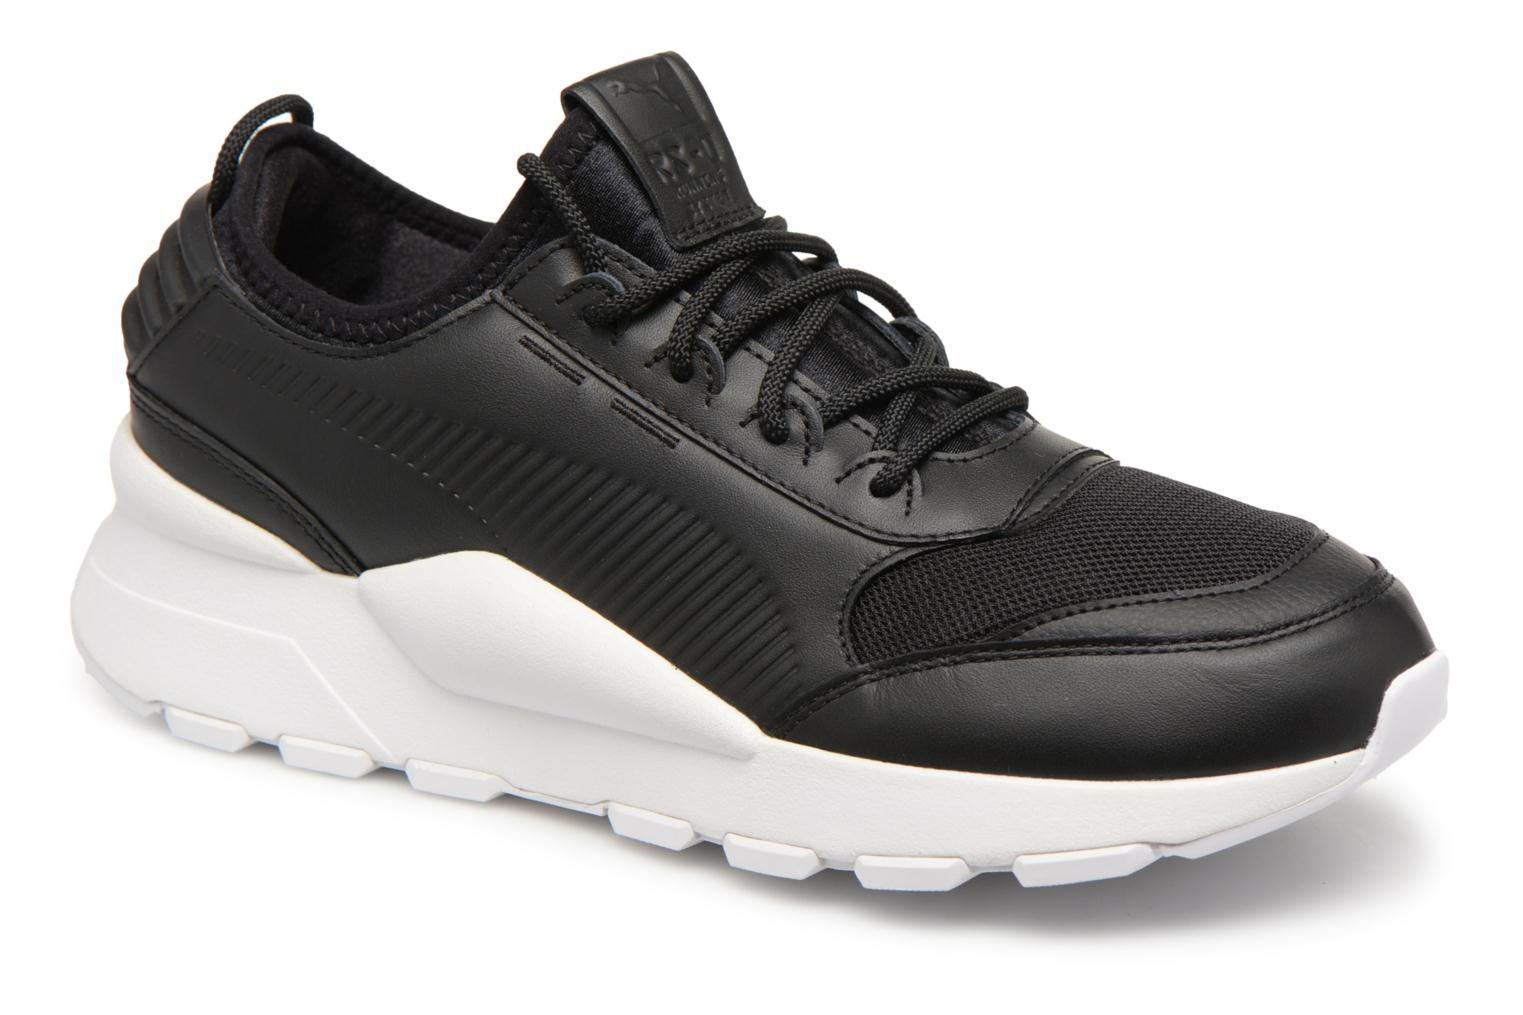 Sneakers Rs-0 Sound by Puma